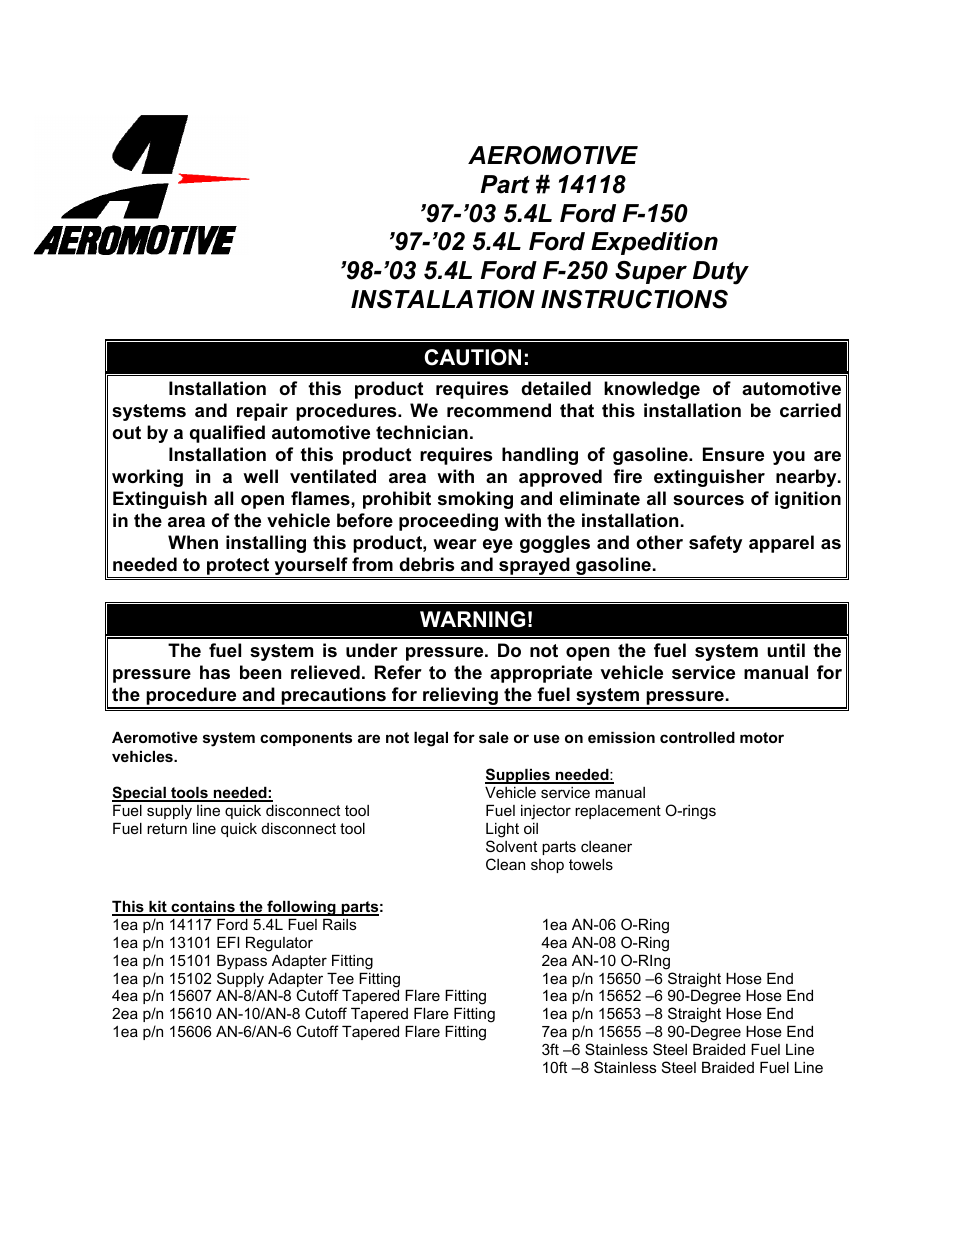 Aeromotive 14118 - 97-05 5.4L 2-VALVE TRUCK & SUV FUEL RAIL SYSTEM User  Manual | 8 pages